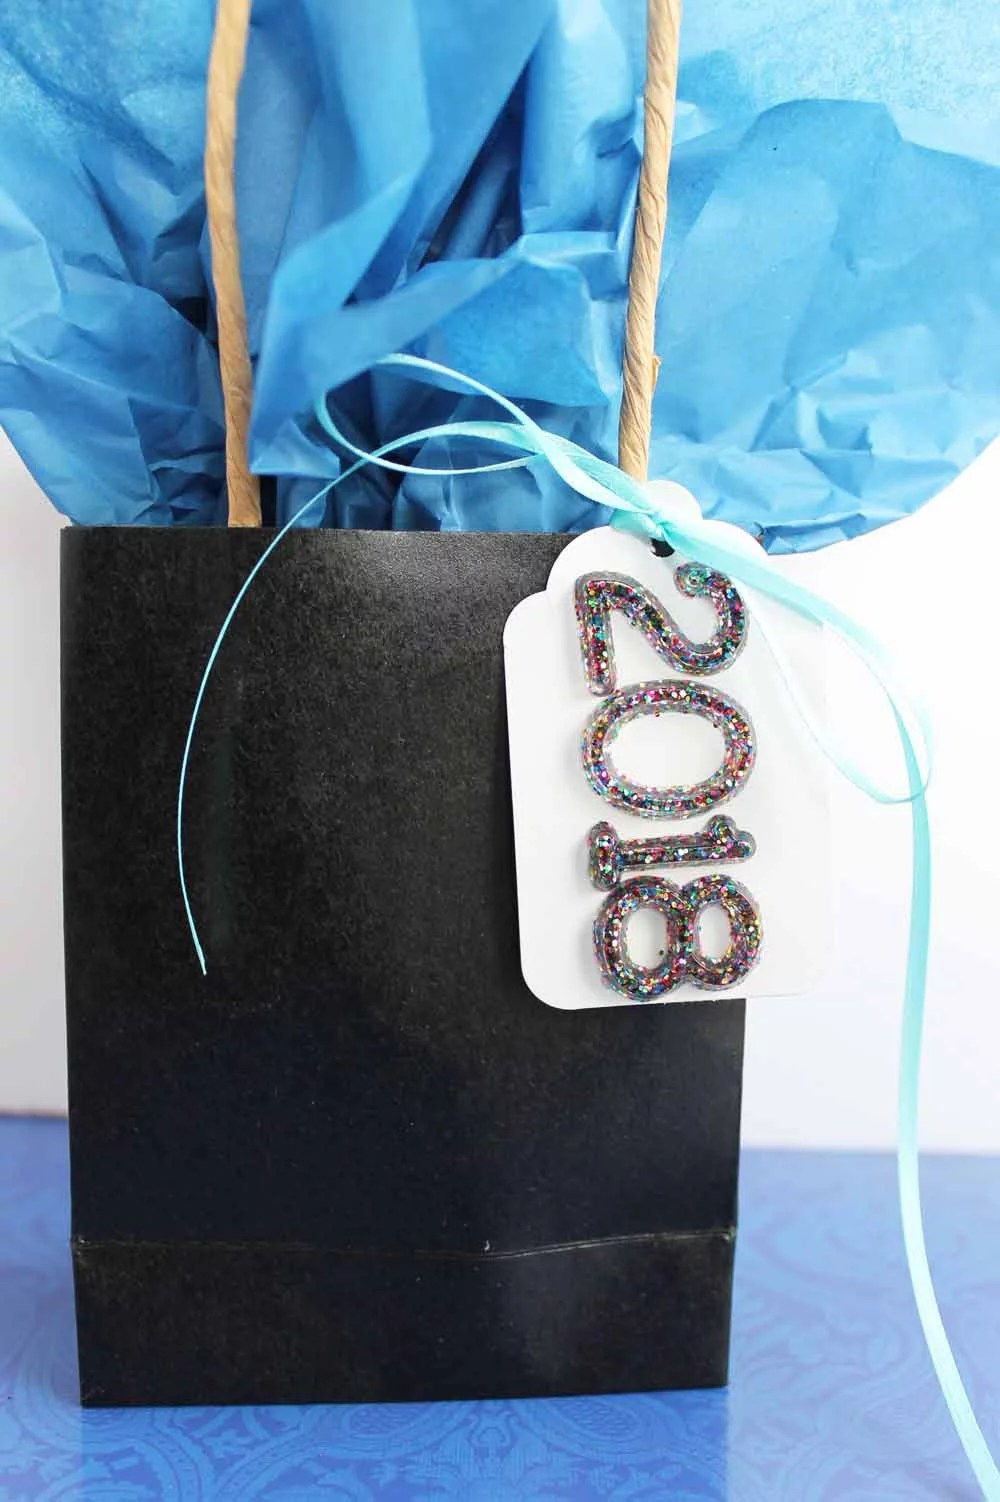 black bag with blue tissue paper and gift tag that has multicolor glitter resin numbers